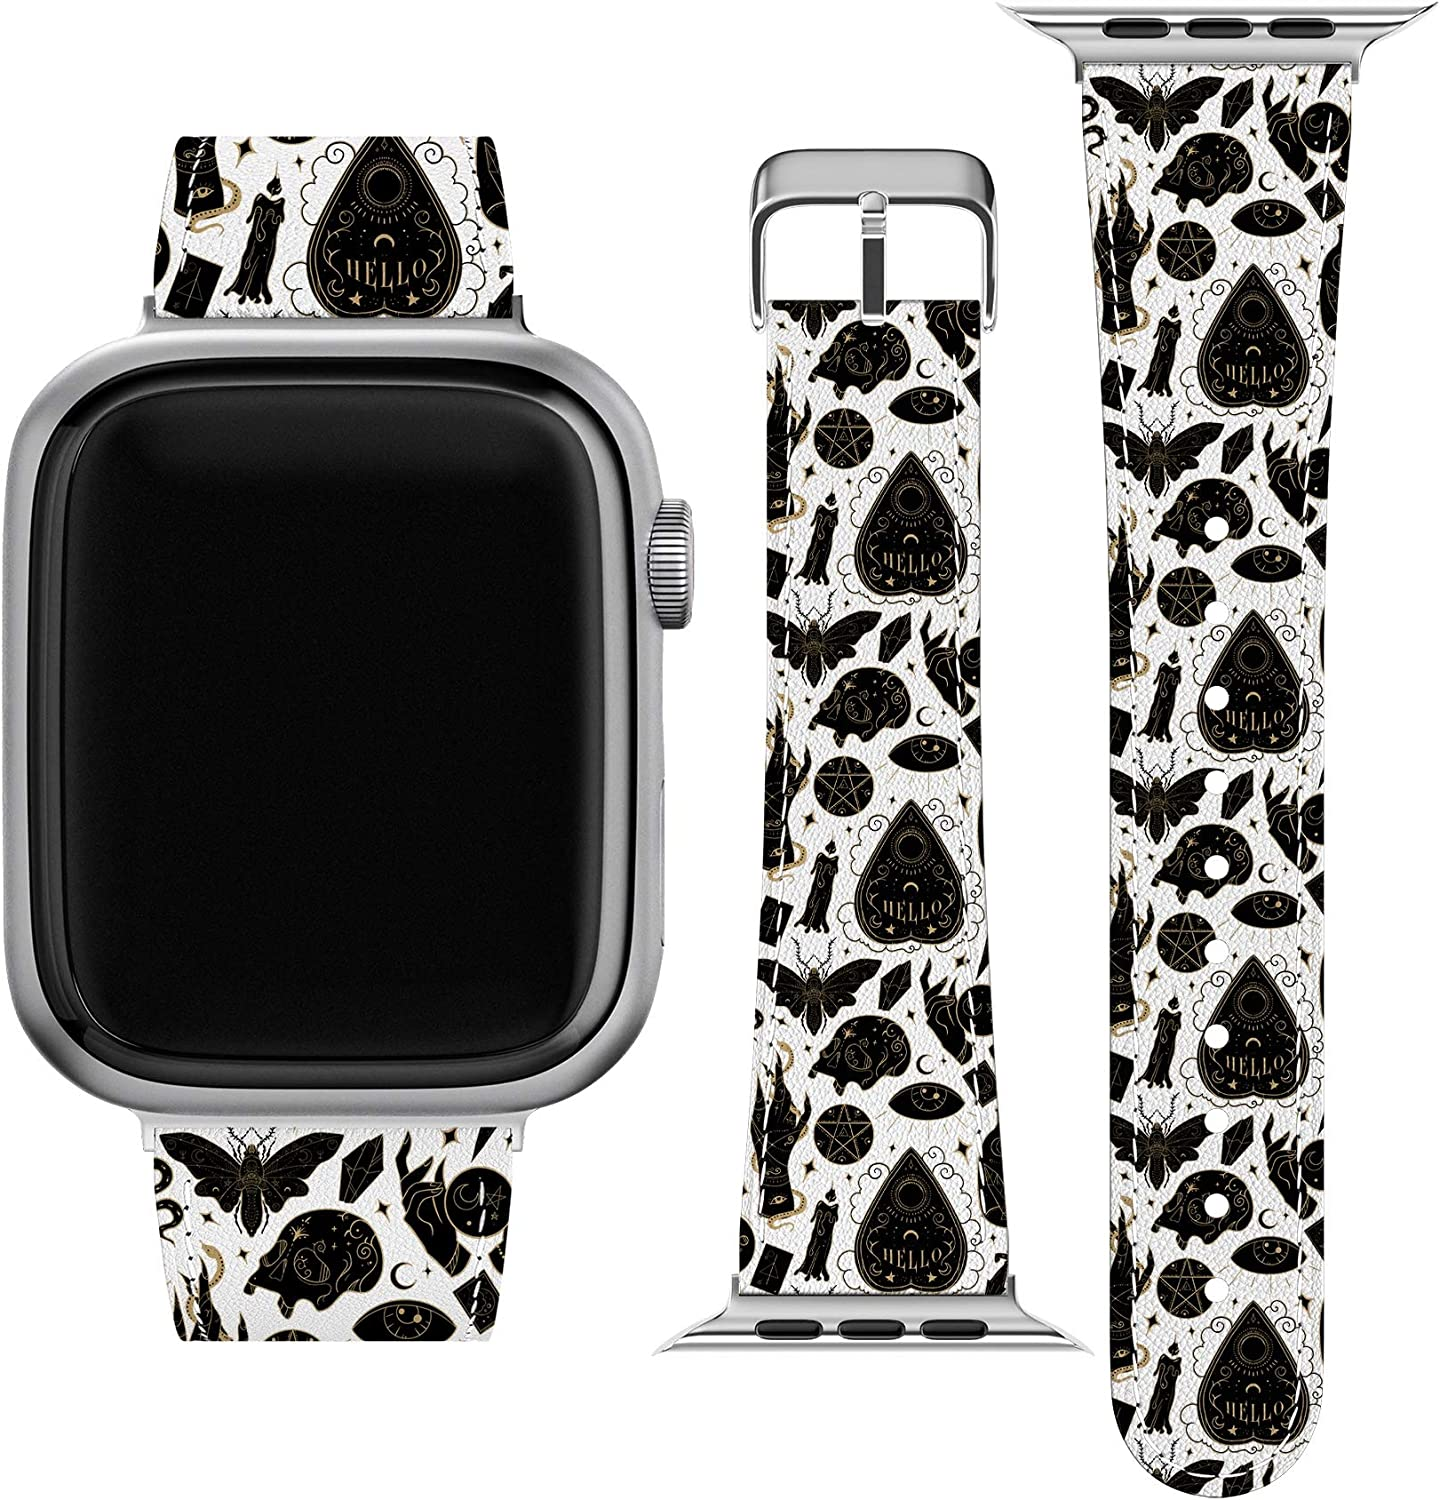 Lex Altern Band Compatible with Apple Watch Series 6 SE 5 4 3 2 1 38mm 40mm 42mm 44mm Magic Mystical Witchcraft Ouija Occult Replacement Strap for iWatch Cute Vegan Leather Print Thin Durable wh056